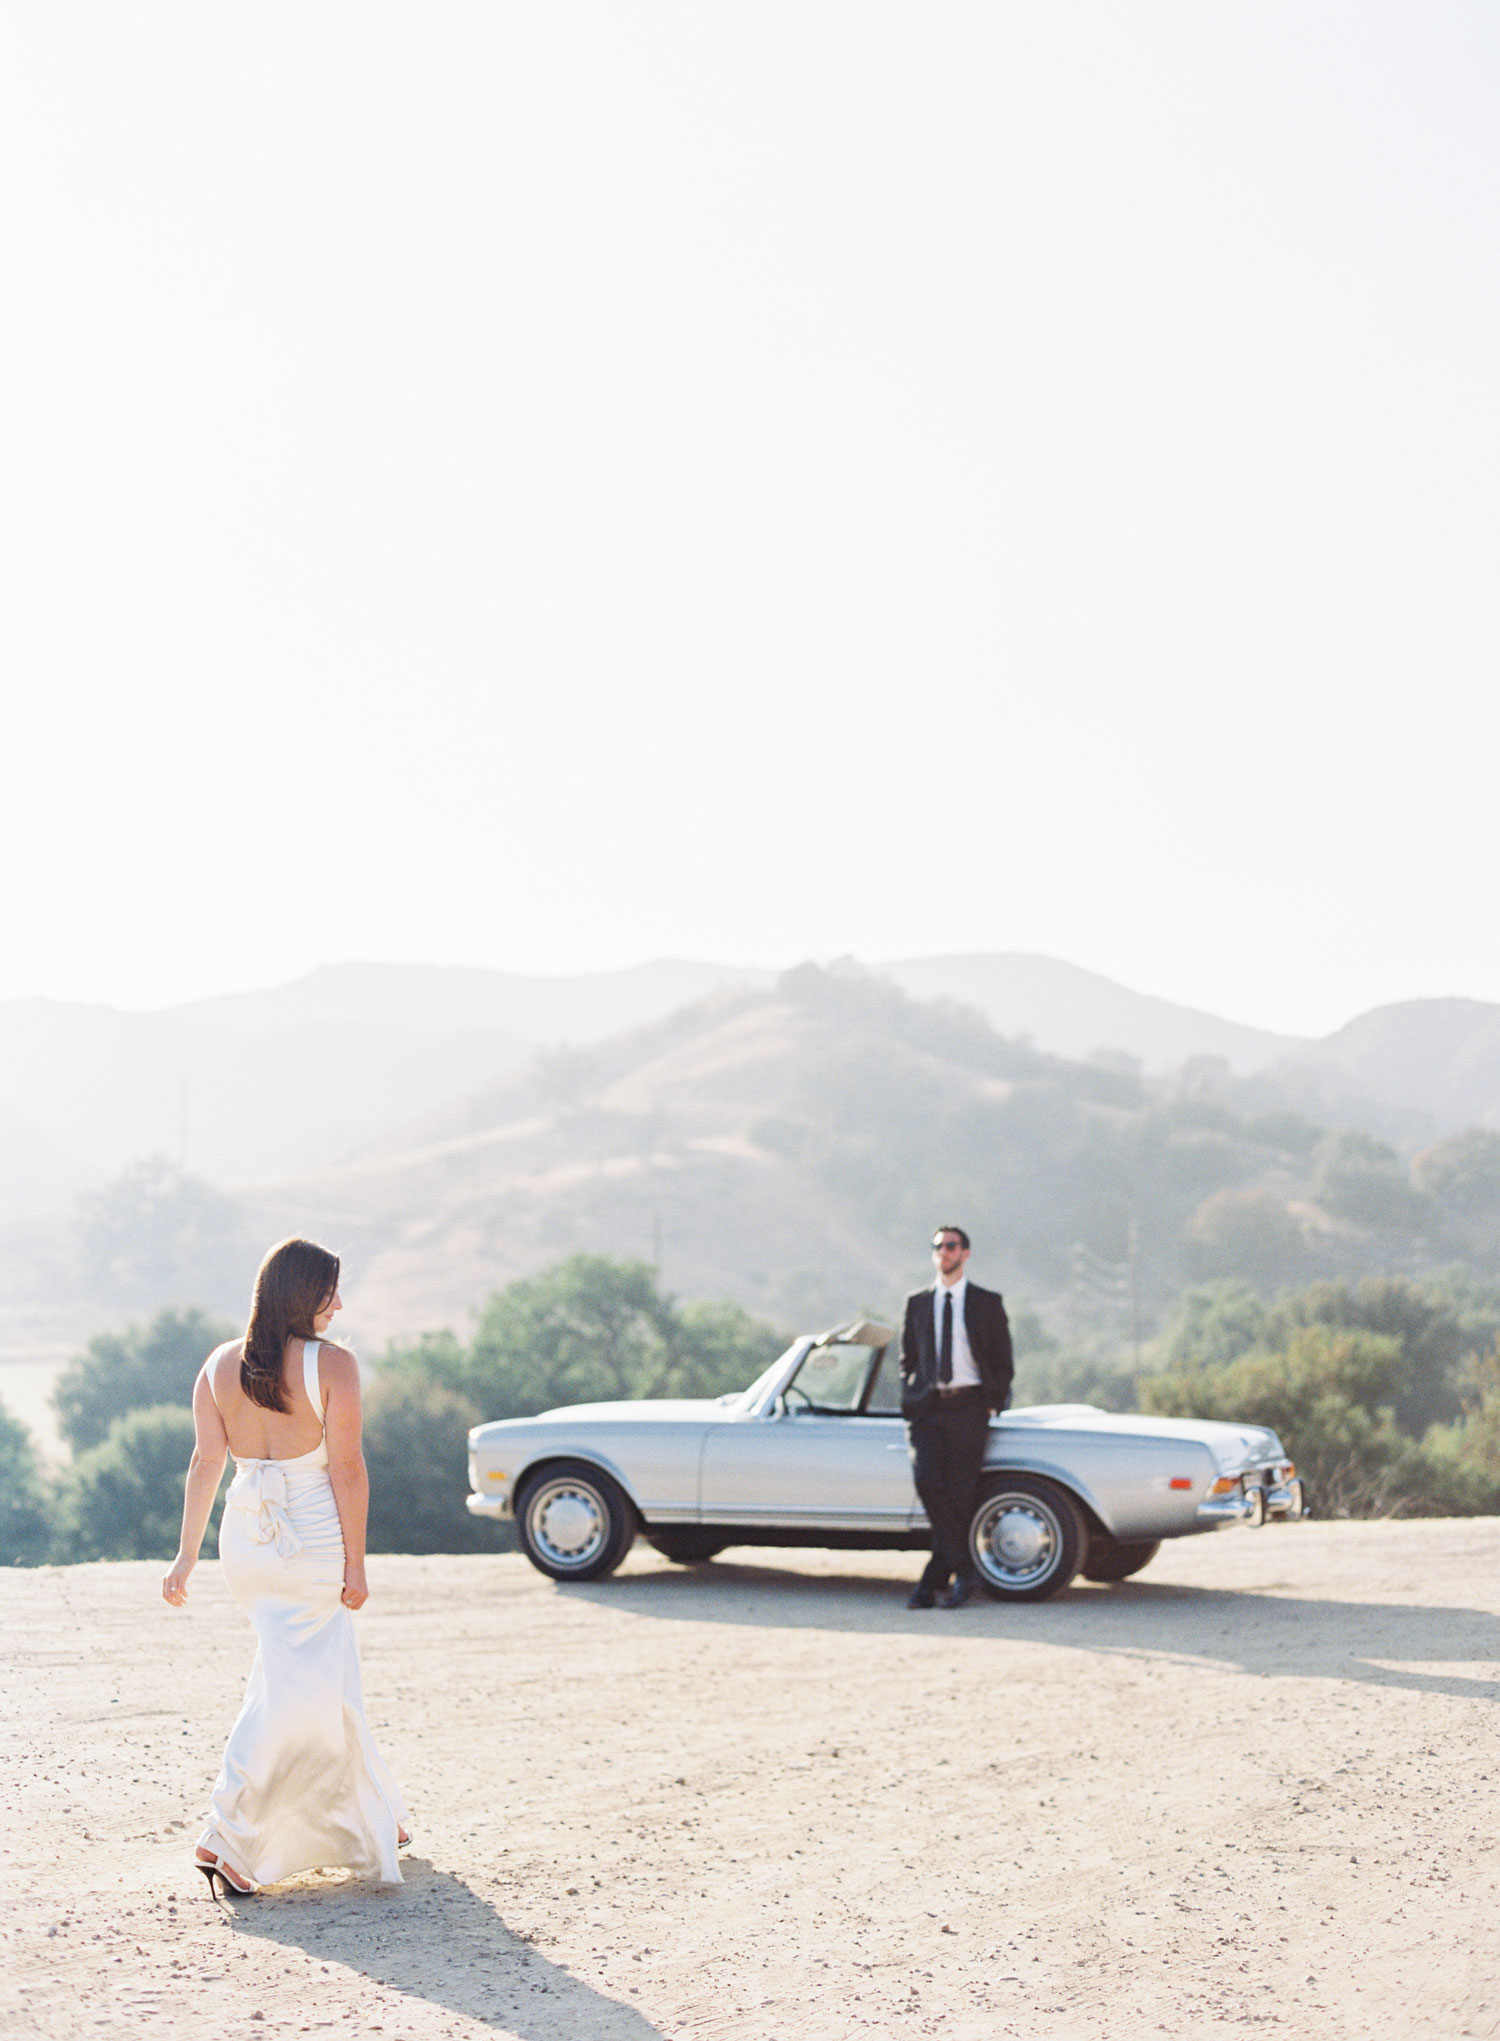 Engagement shoot photo ideas malibu classic car vintage mustang convertible bride walking toward groom